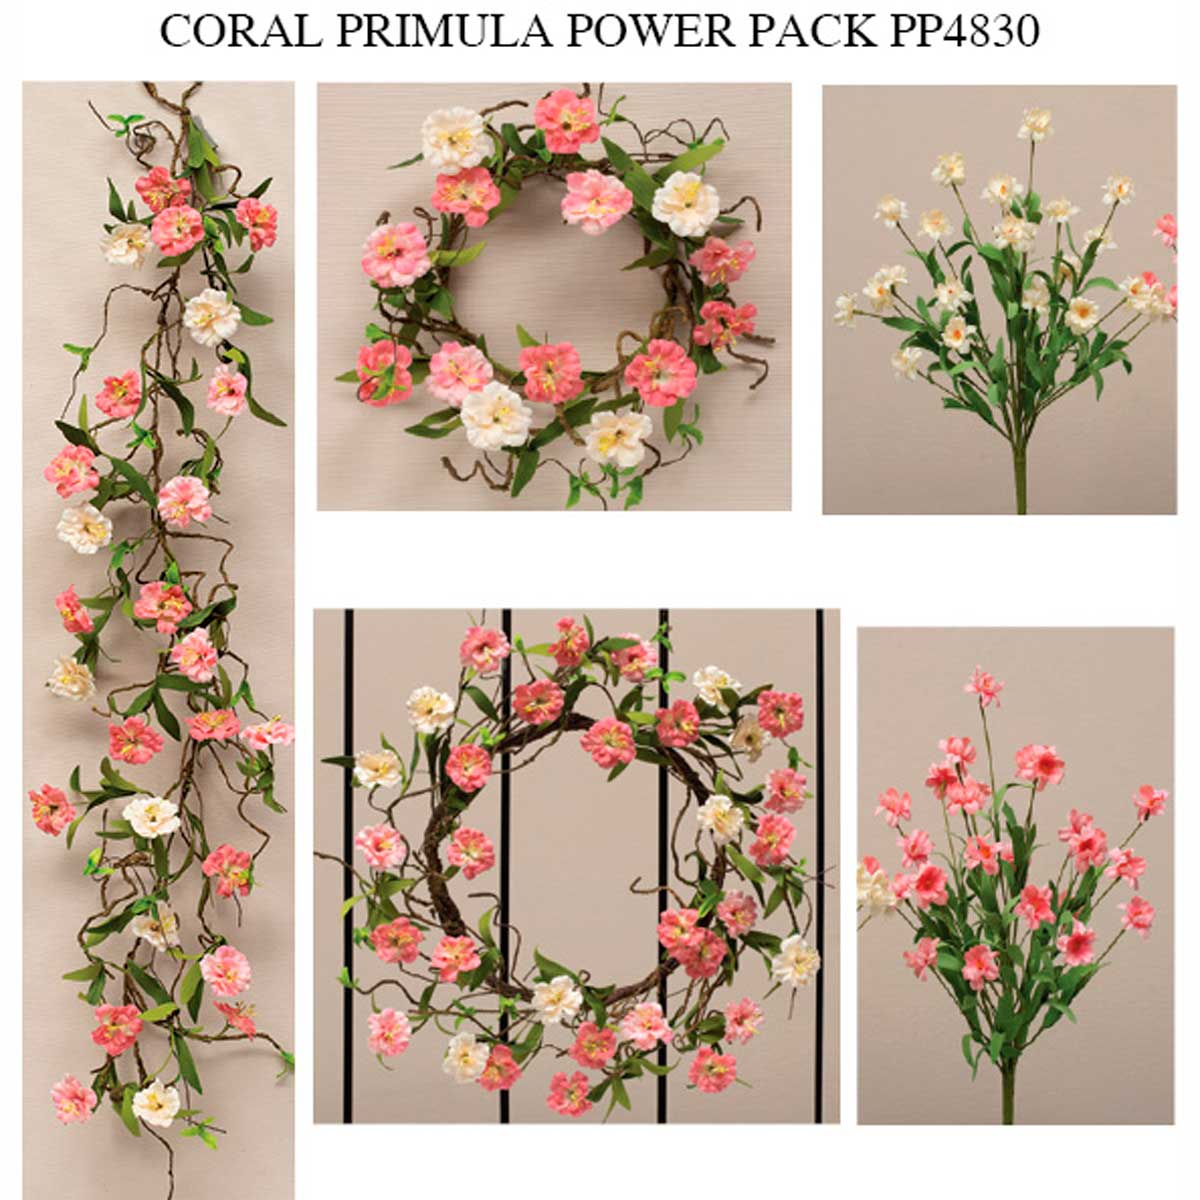 CORAL AND CREAM PRIMULA POWER PACK 11 UNITS